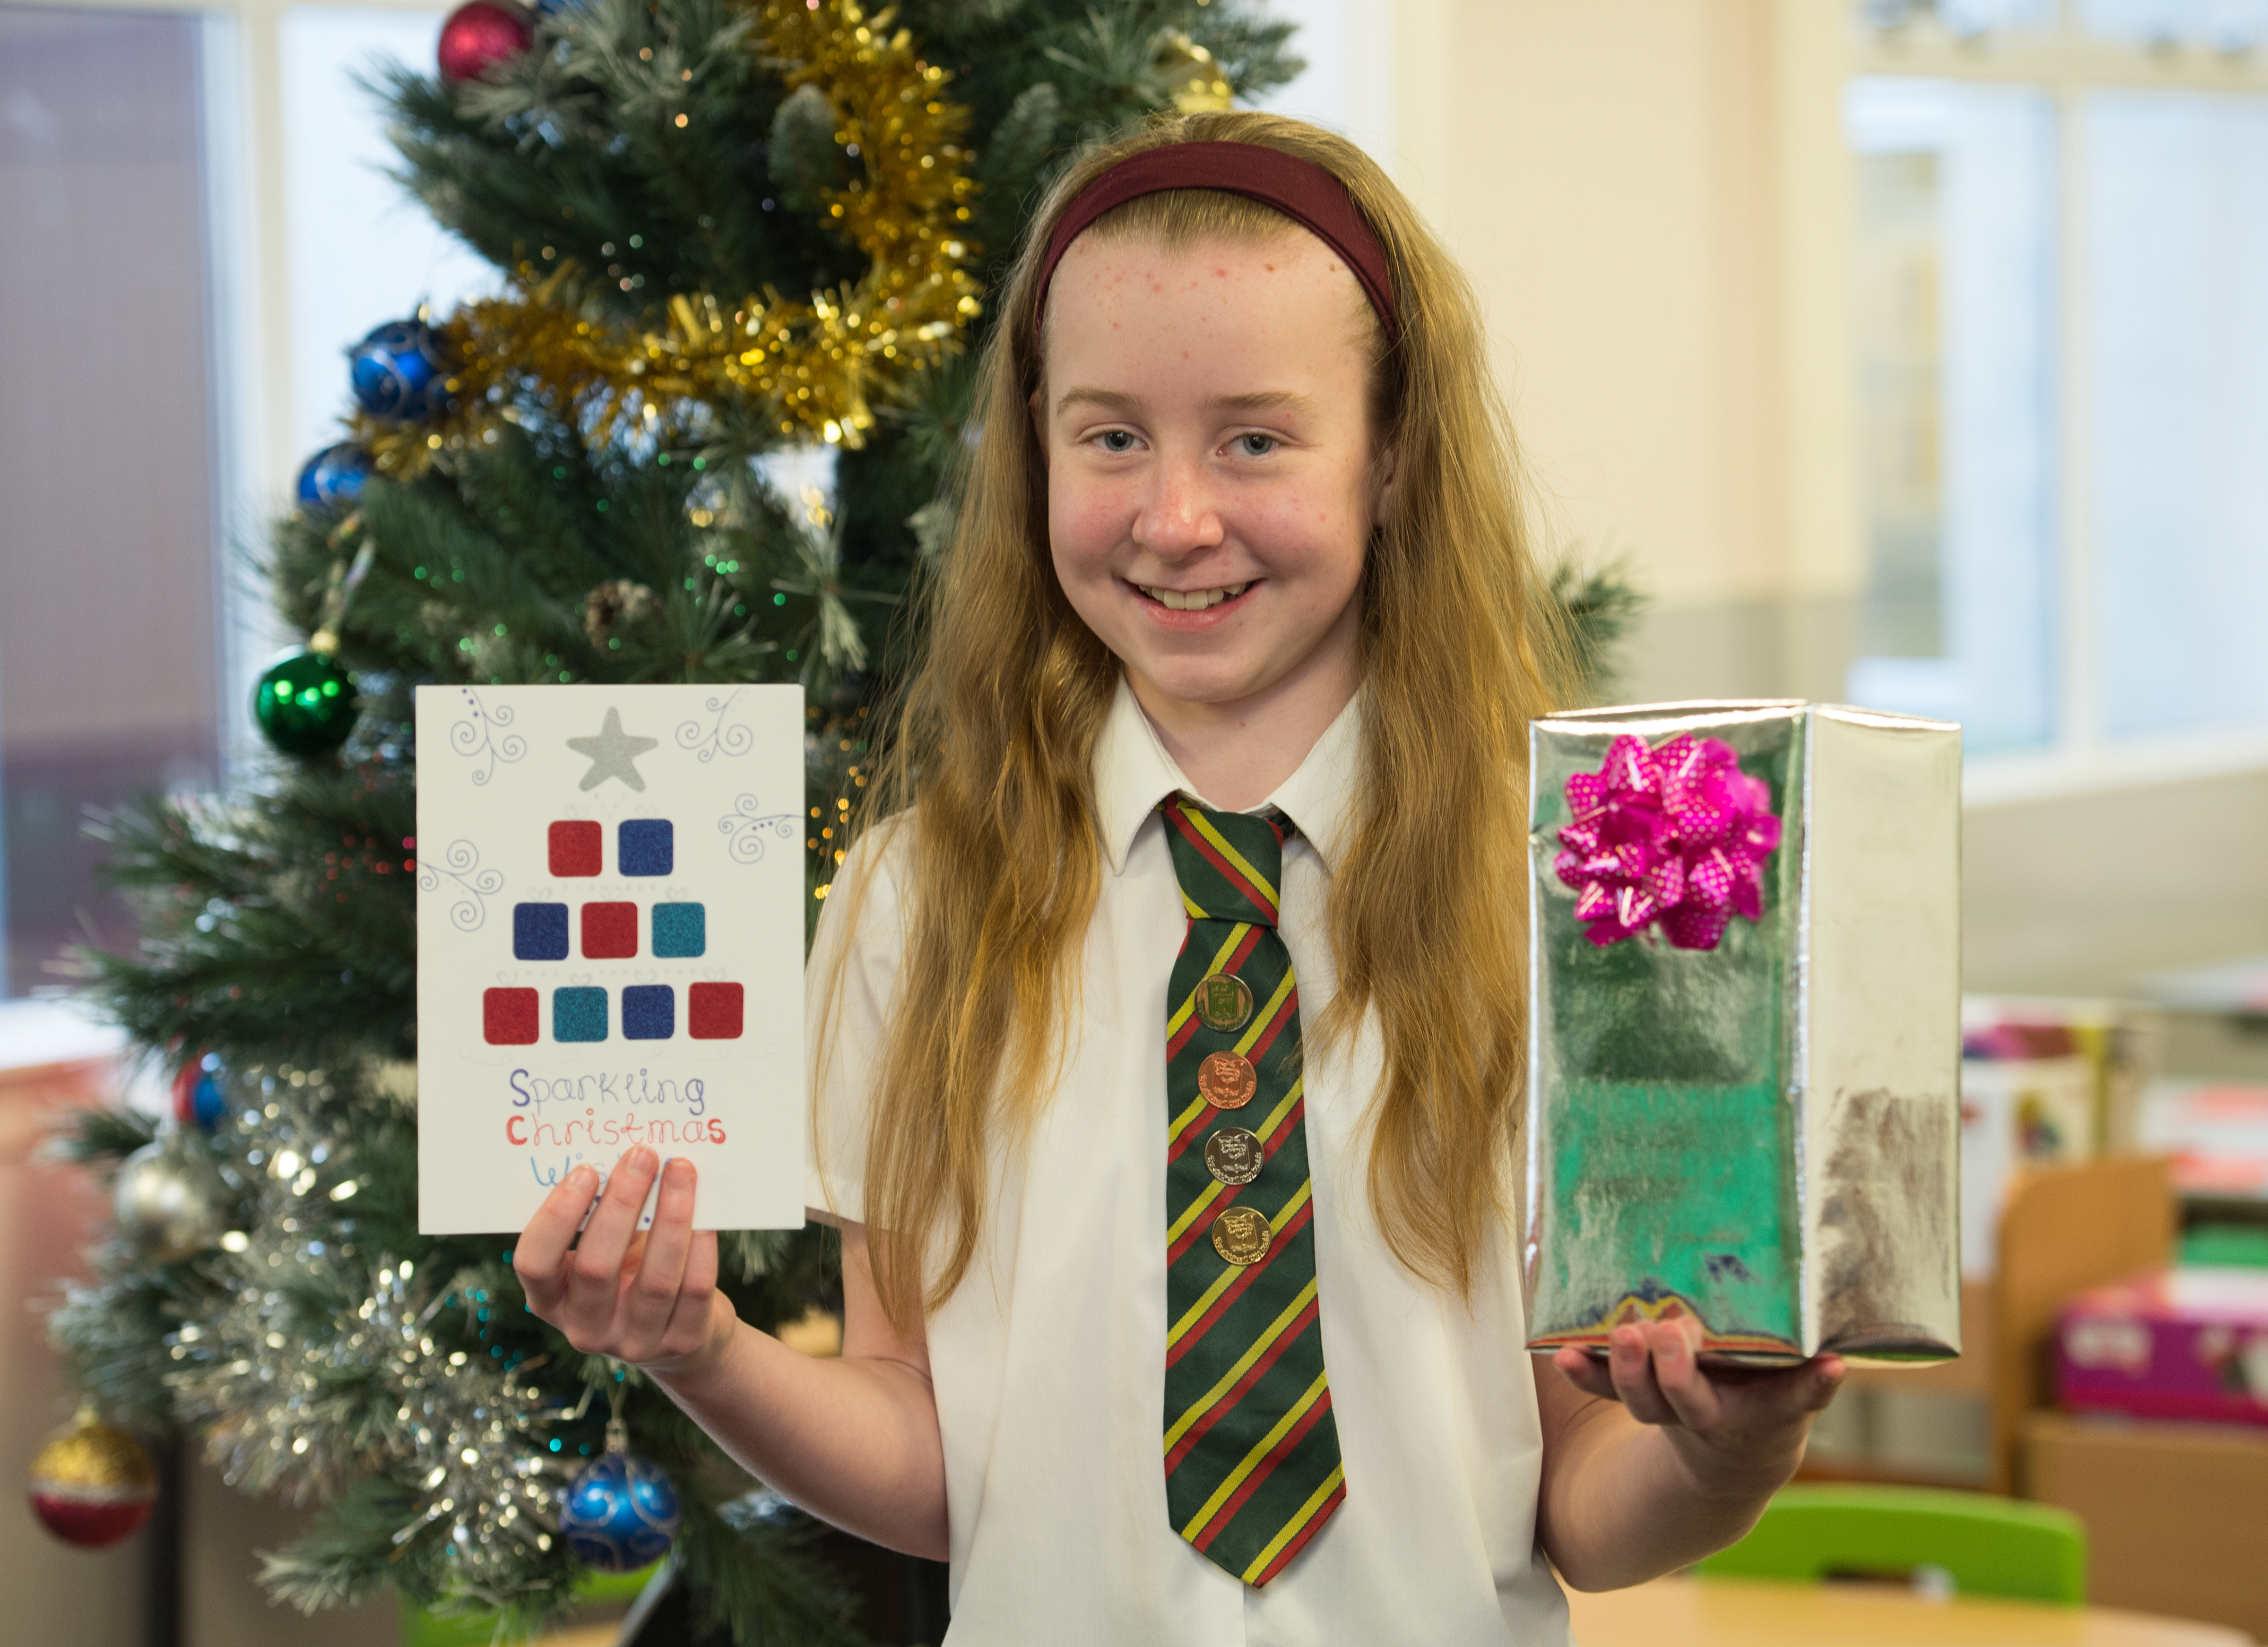 Jess Pick designed the winning entry for Richard Lochhead MSP's Christmas card competition to support Abbie's Sparkle Foundation.